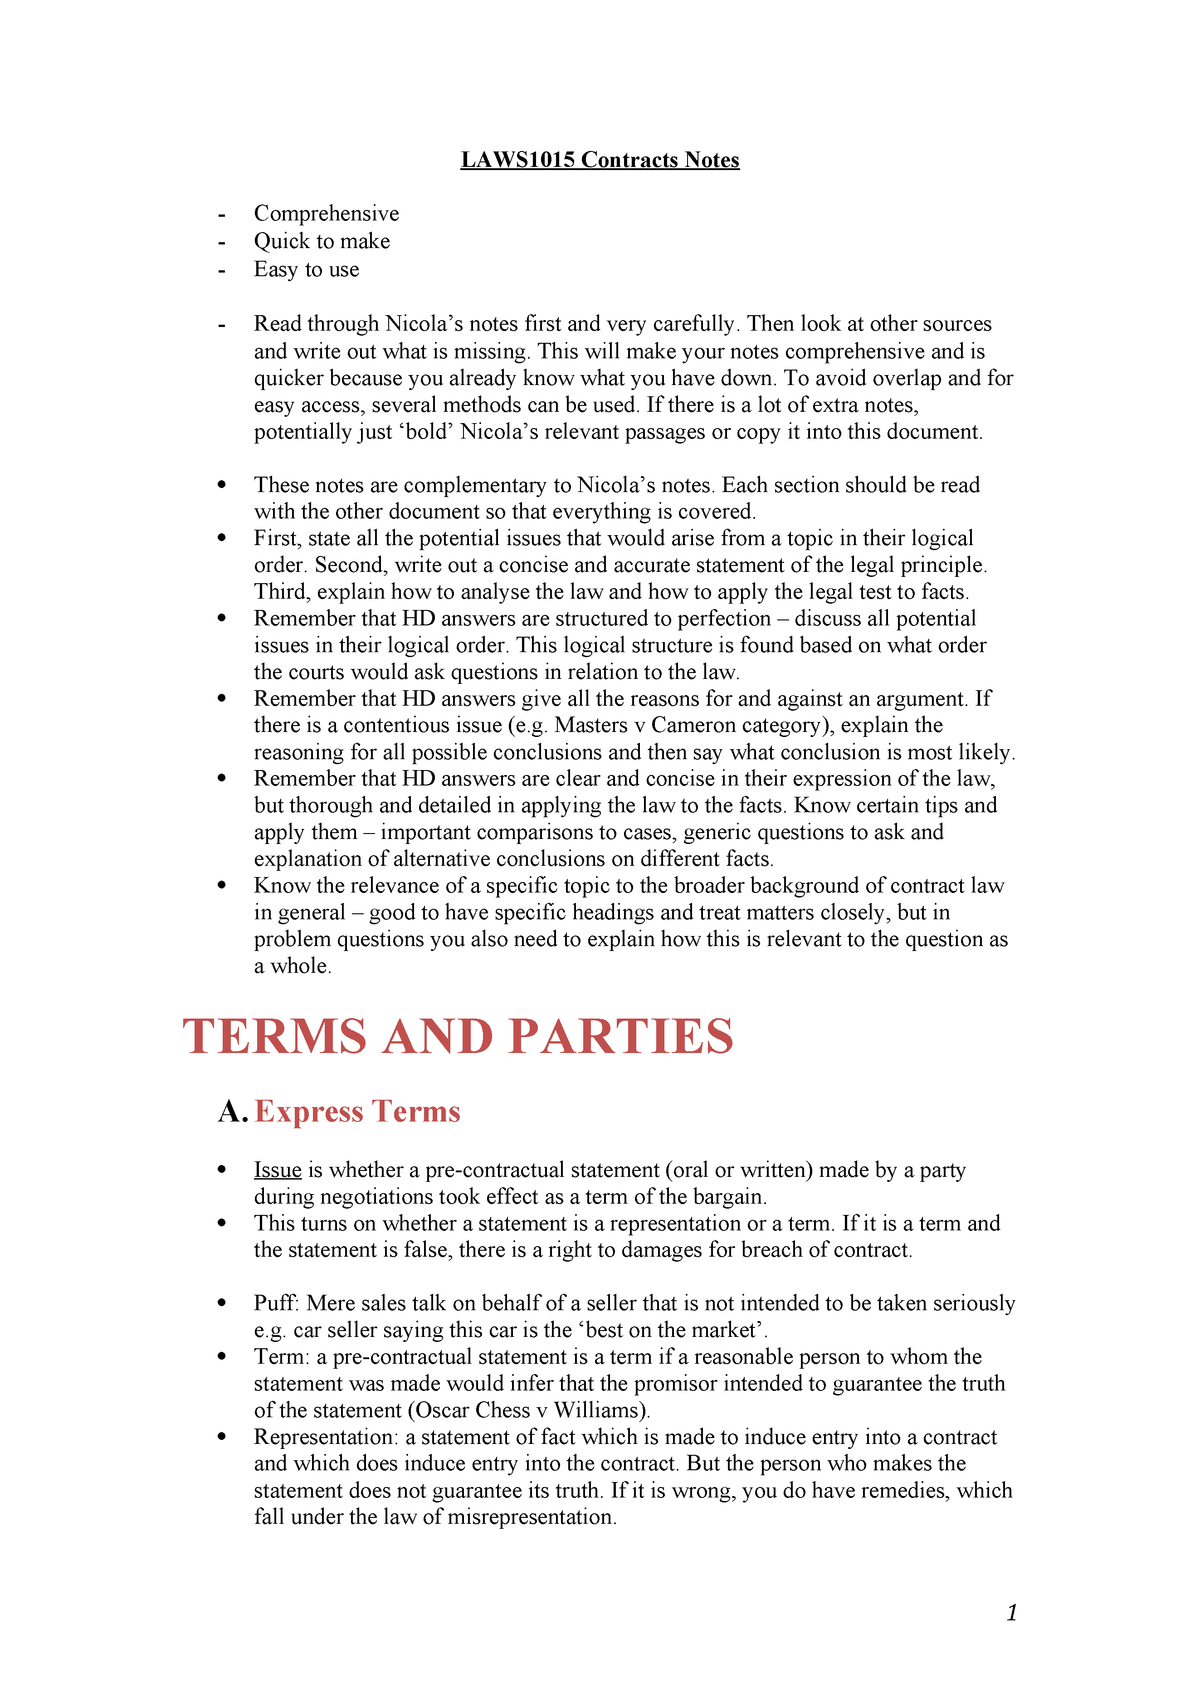 Contracts Notes - LAWS1015 - StuDocu